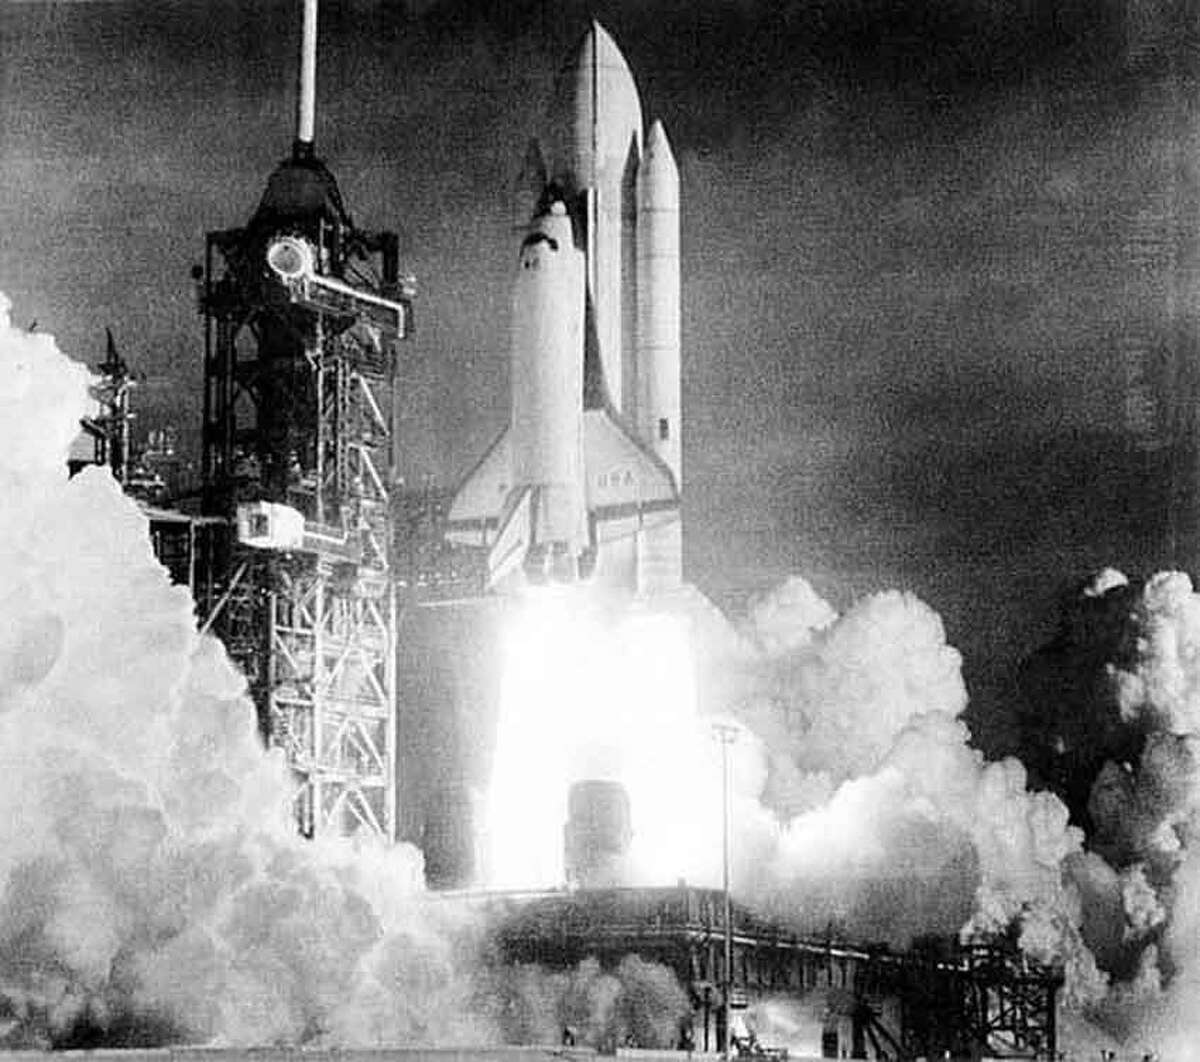 The Space Shuttle Columbia is lifted off the launch pad at Cape Canaveral, making the first flight of this reusable spacecraft, at Kennedy Space Center, Fla., Sunday, April 12, 1981. (AP Photo/NASA)